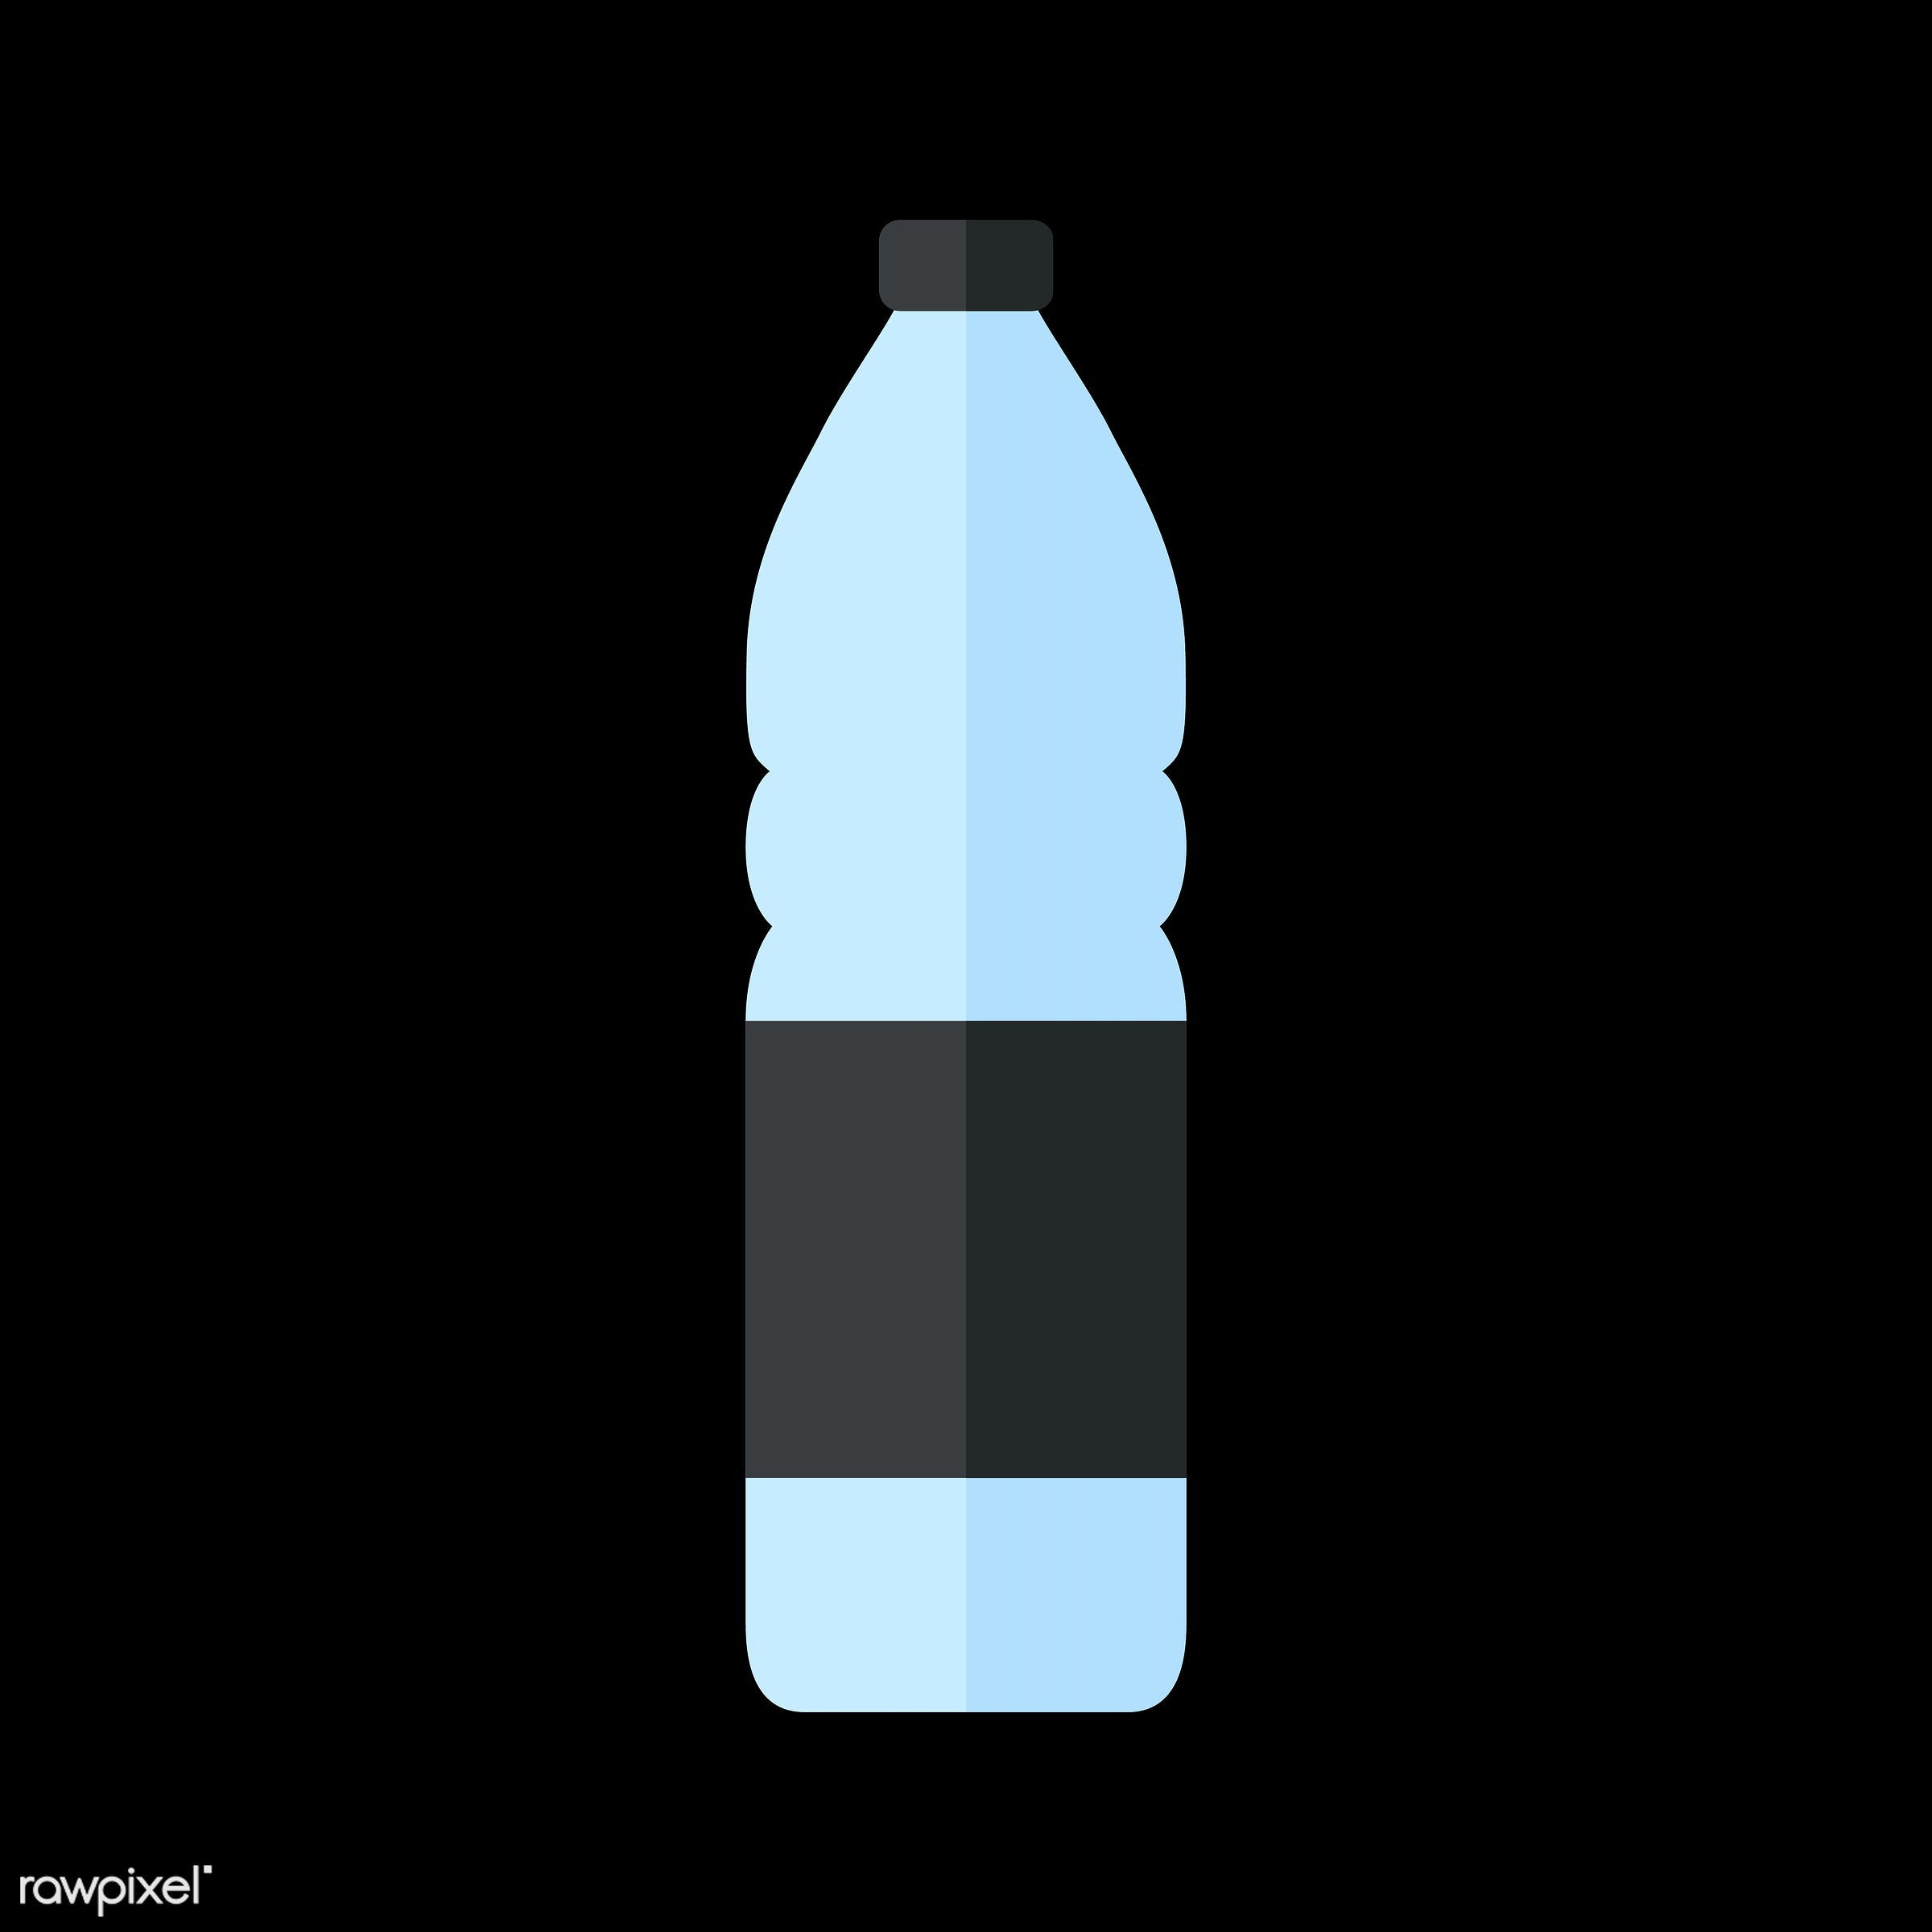 vector, graphic, illustration, icon, symbol, colorful, cute, drink, beverage, water, water bottle, plastic bottle, black